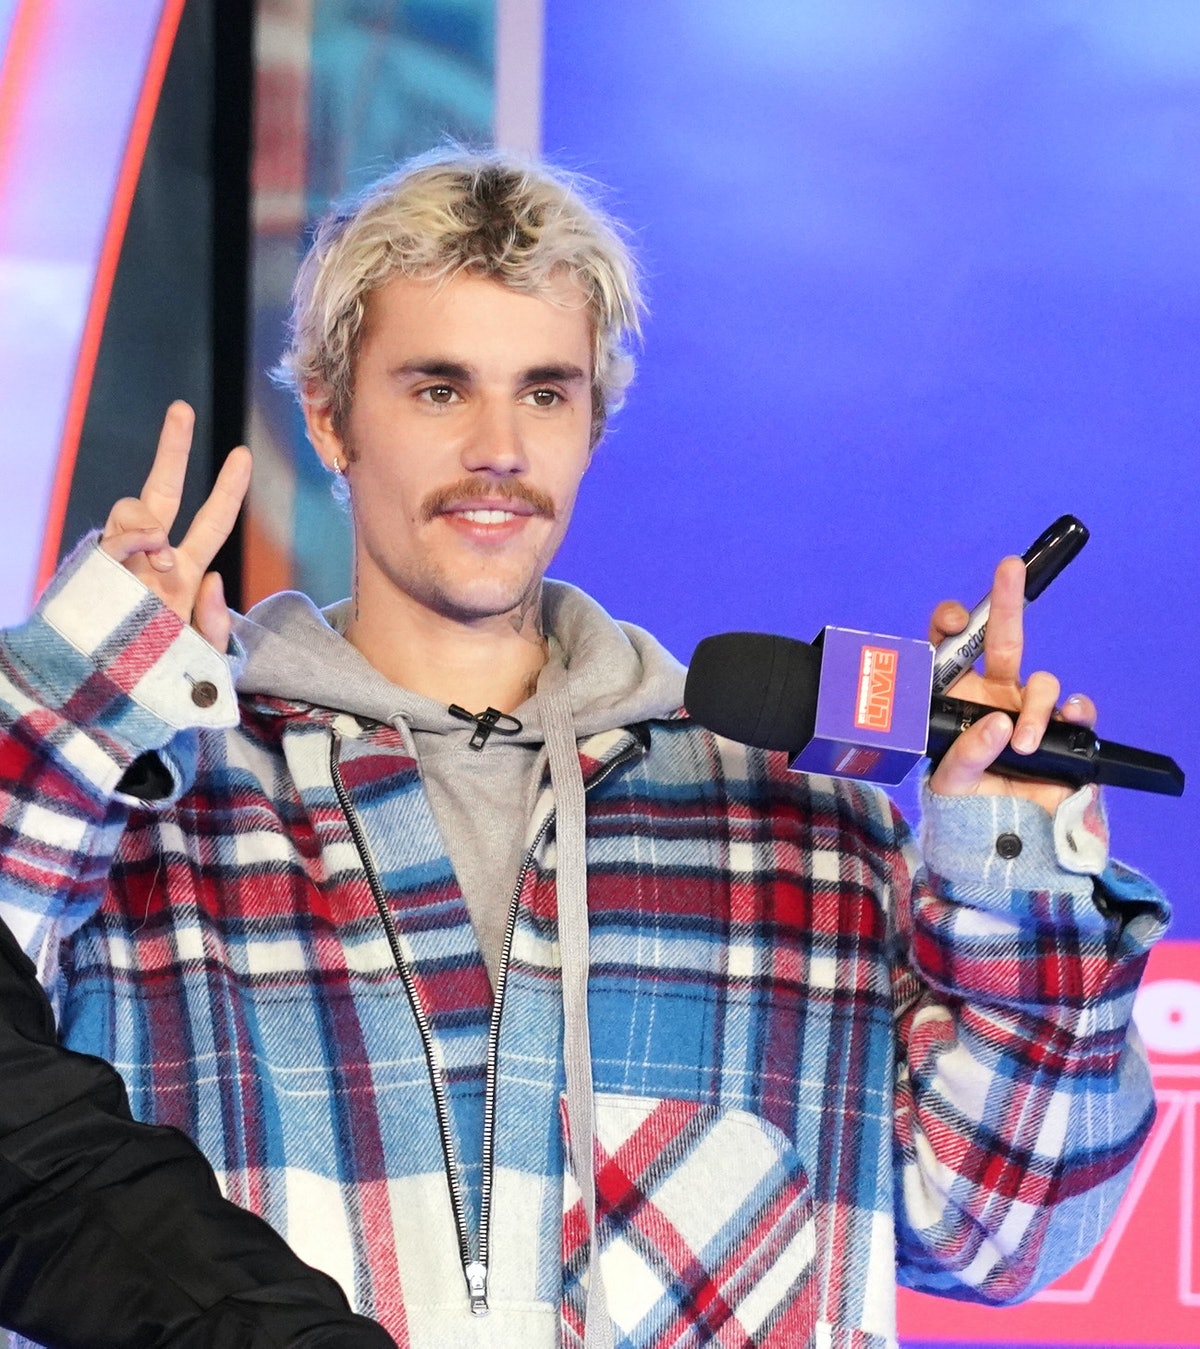 Justin Bieber throws up the peace sign.